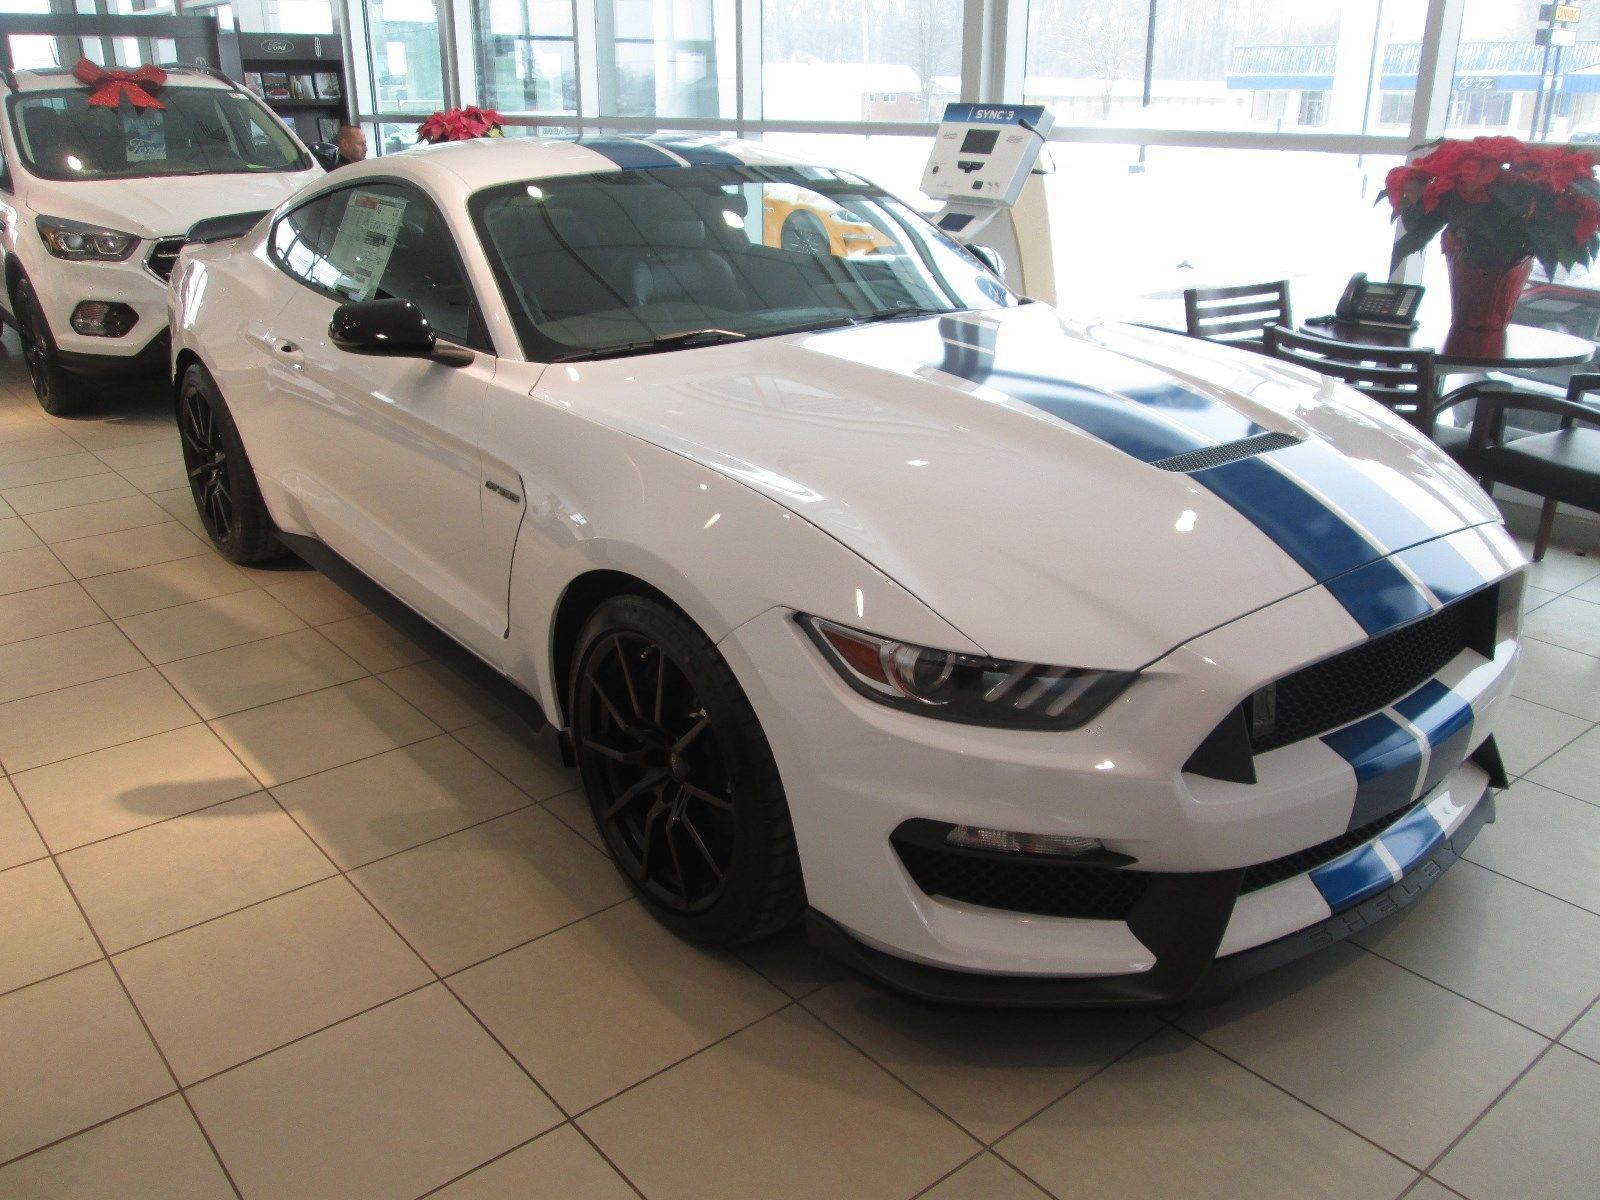 Used 2018 Ford Mustang Shelby Gt350 2018 Ford Performance Shelby Gt350 Brand New Only 10 Miles 2017 2018 Ford Mustang Mustang Shelby Ford Mustang Shelby